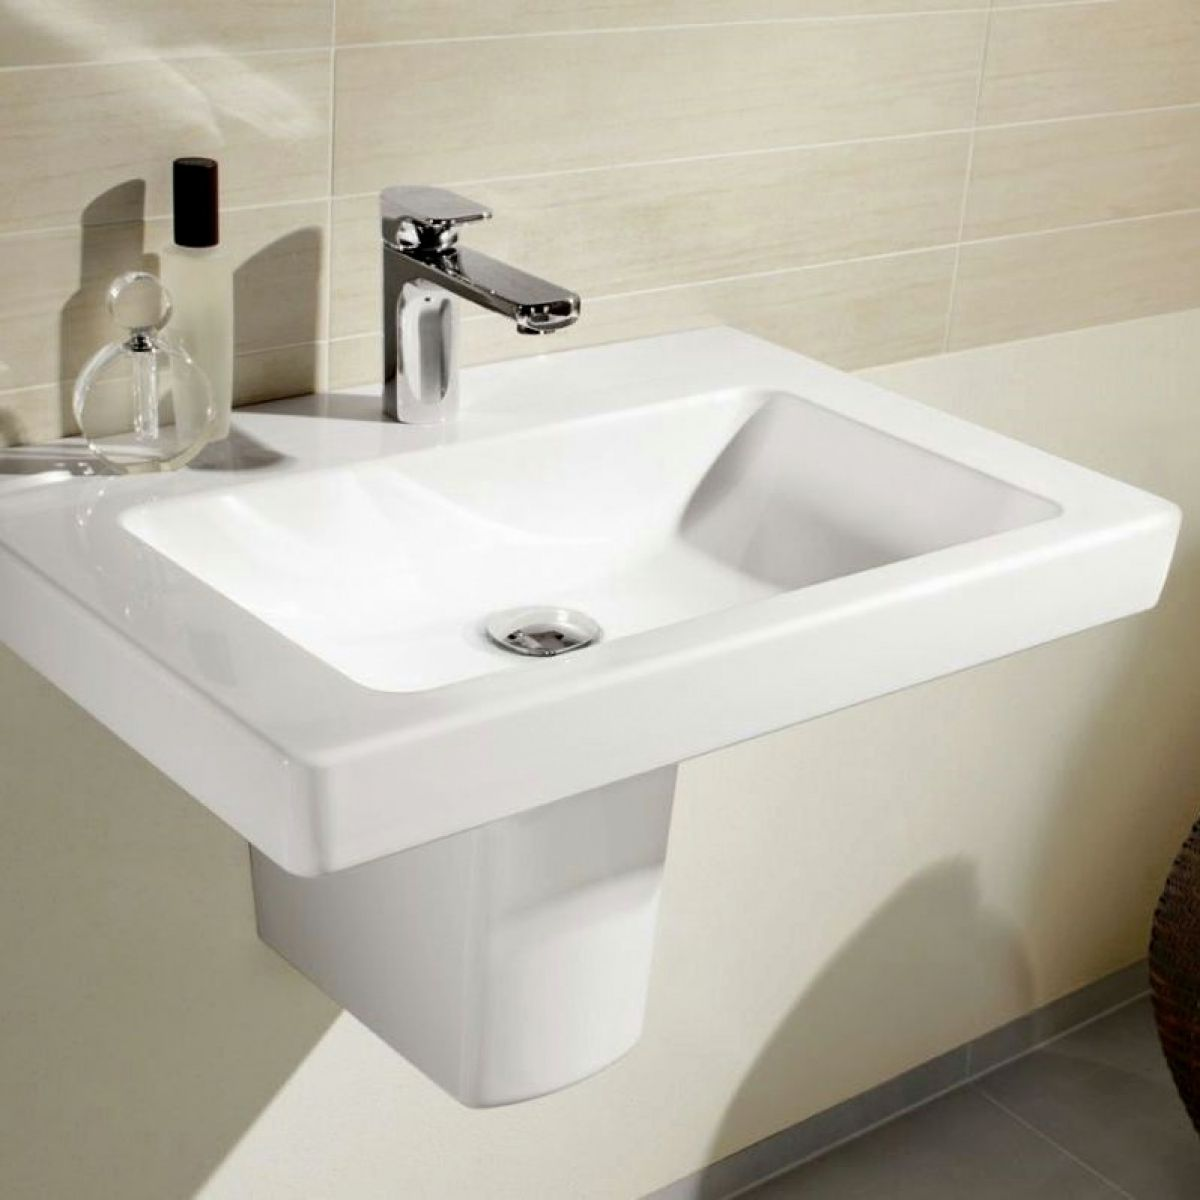 Villeroy & Boch Subway 2.0 Square Washbasin